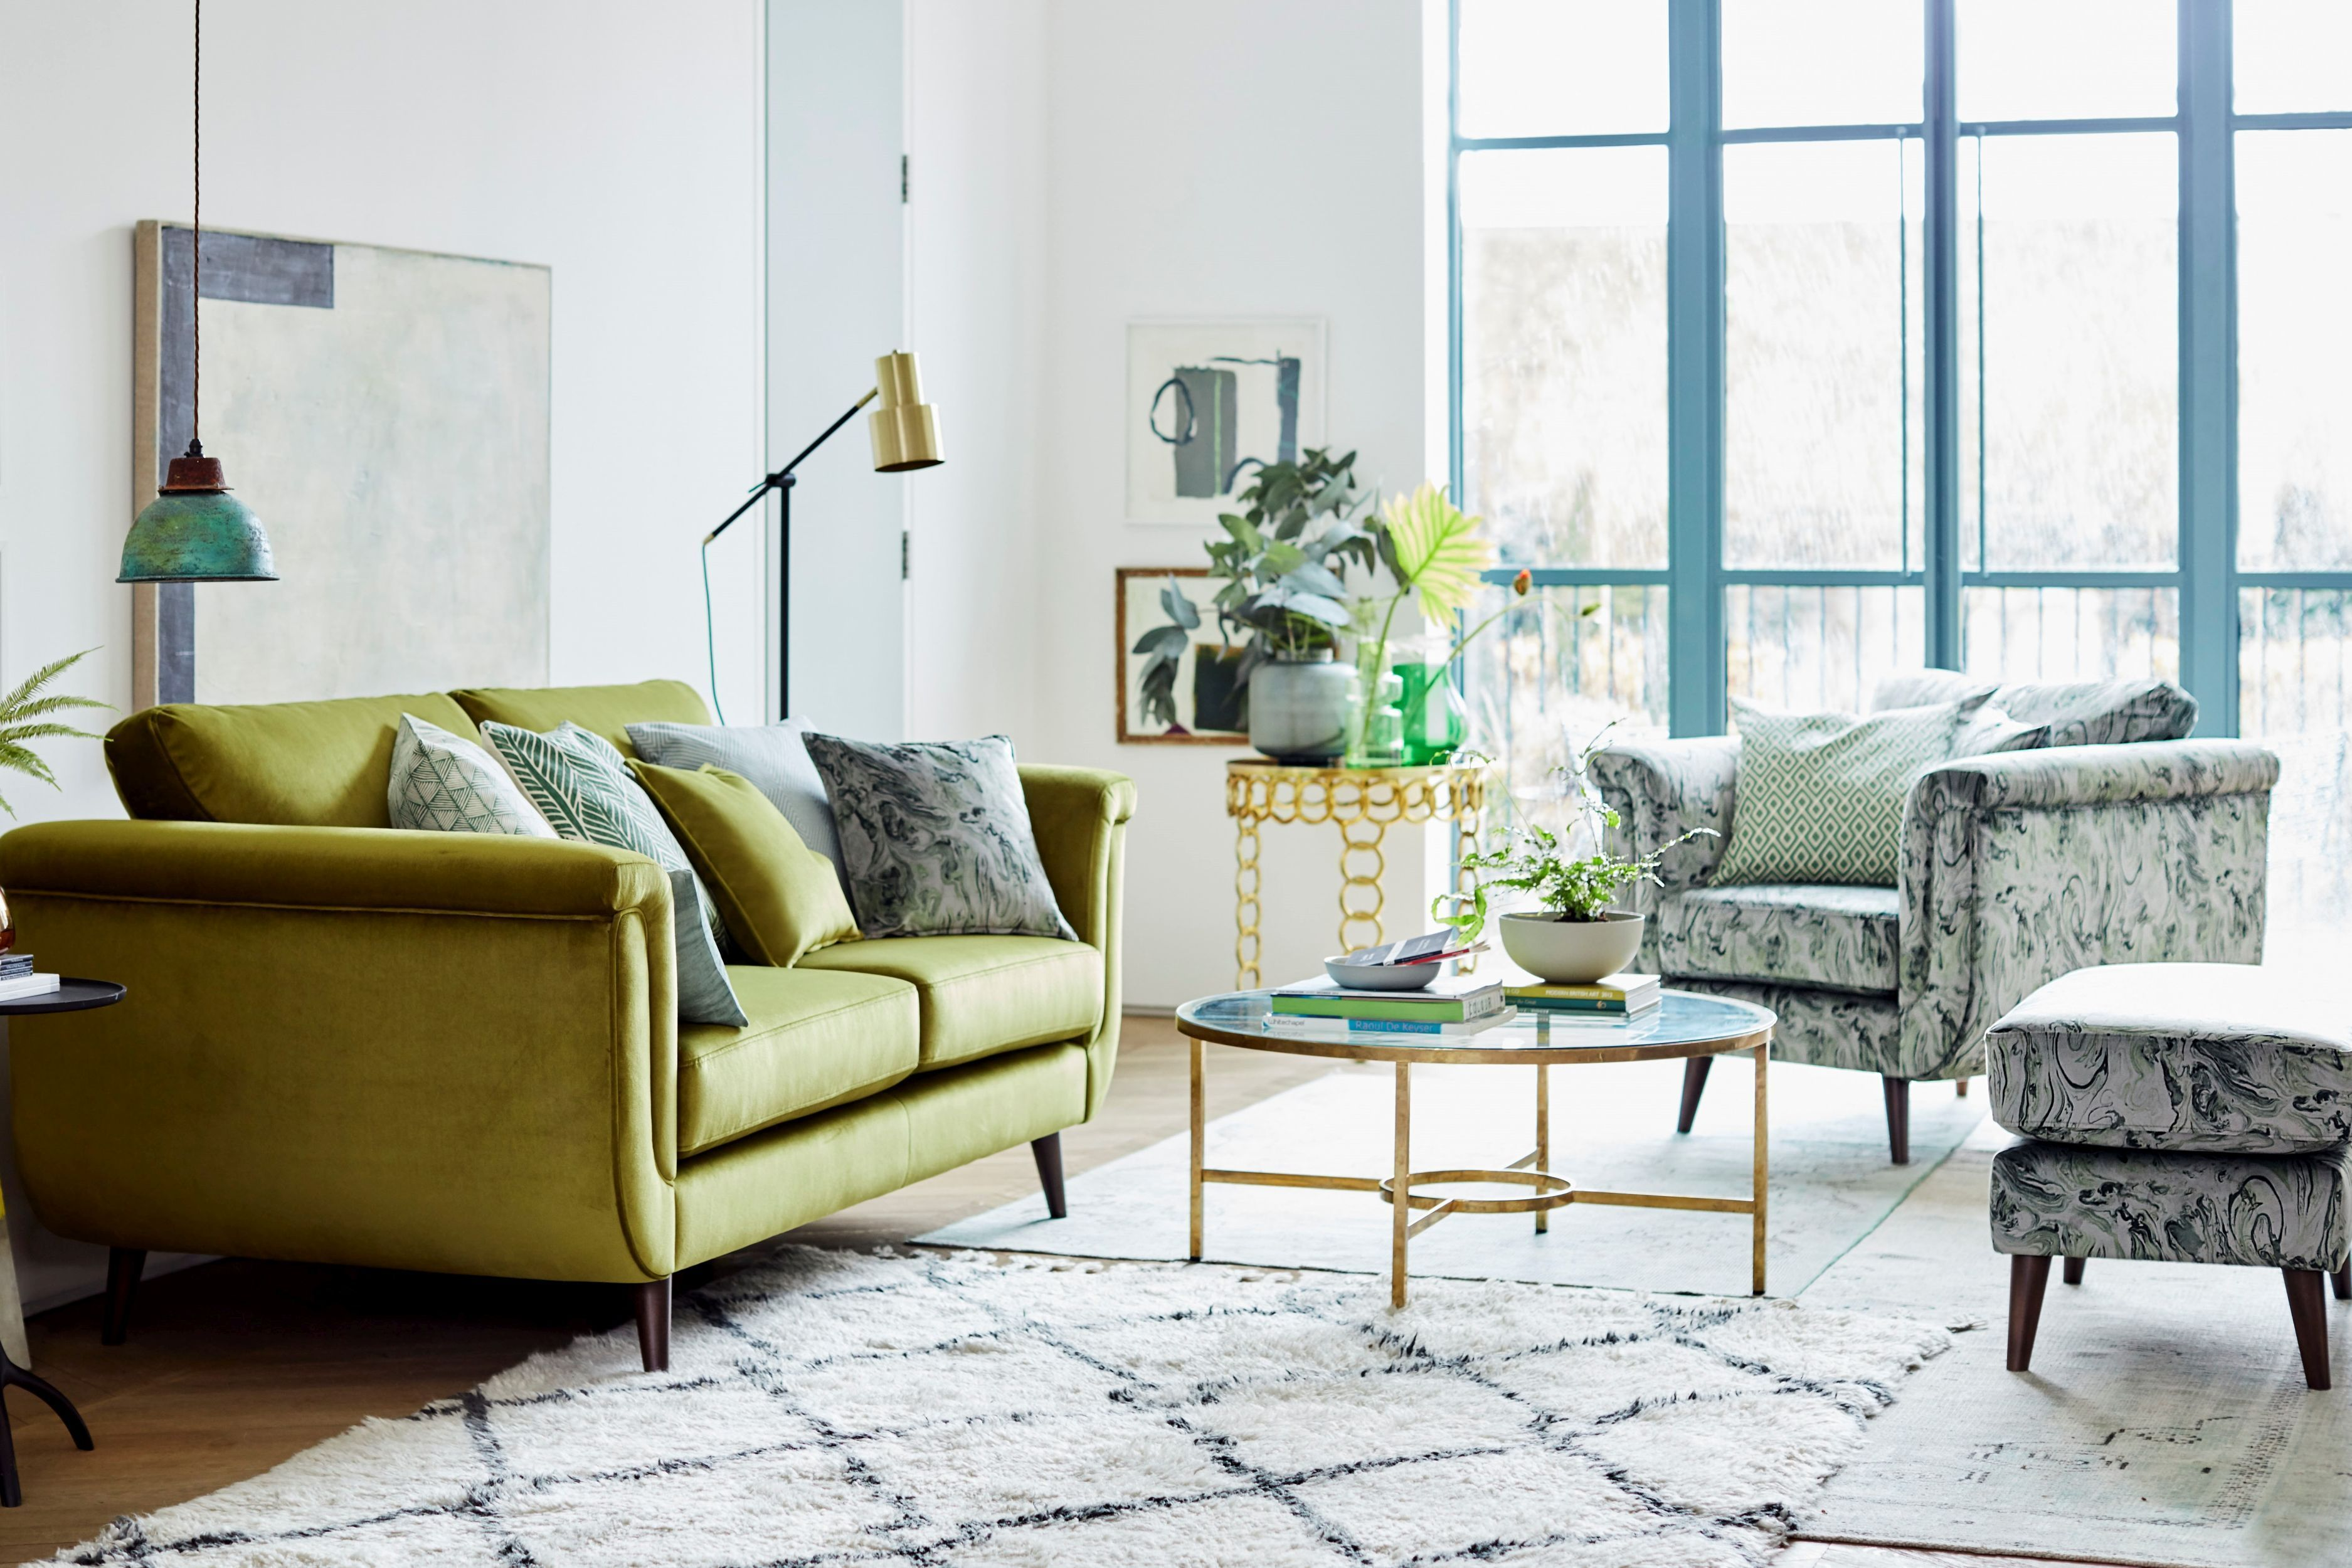 Topaz sofa, £1,598 and pattern standard chair, £1,098 and pattern rectangular footstool, £698, DFS